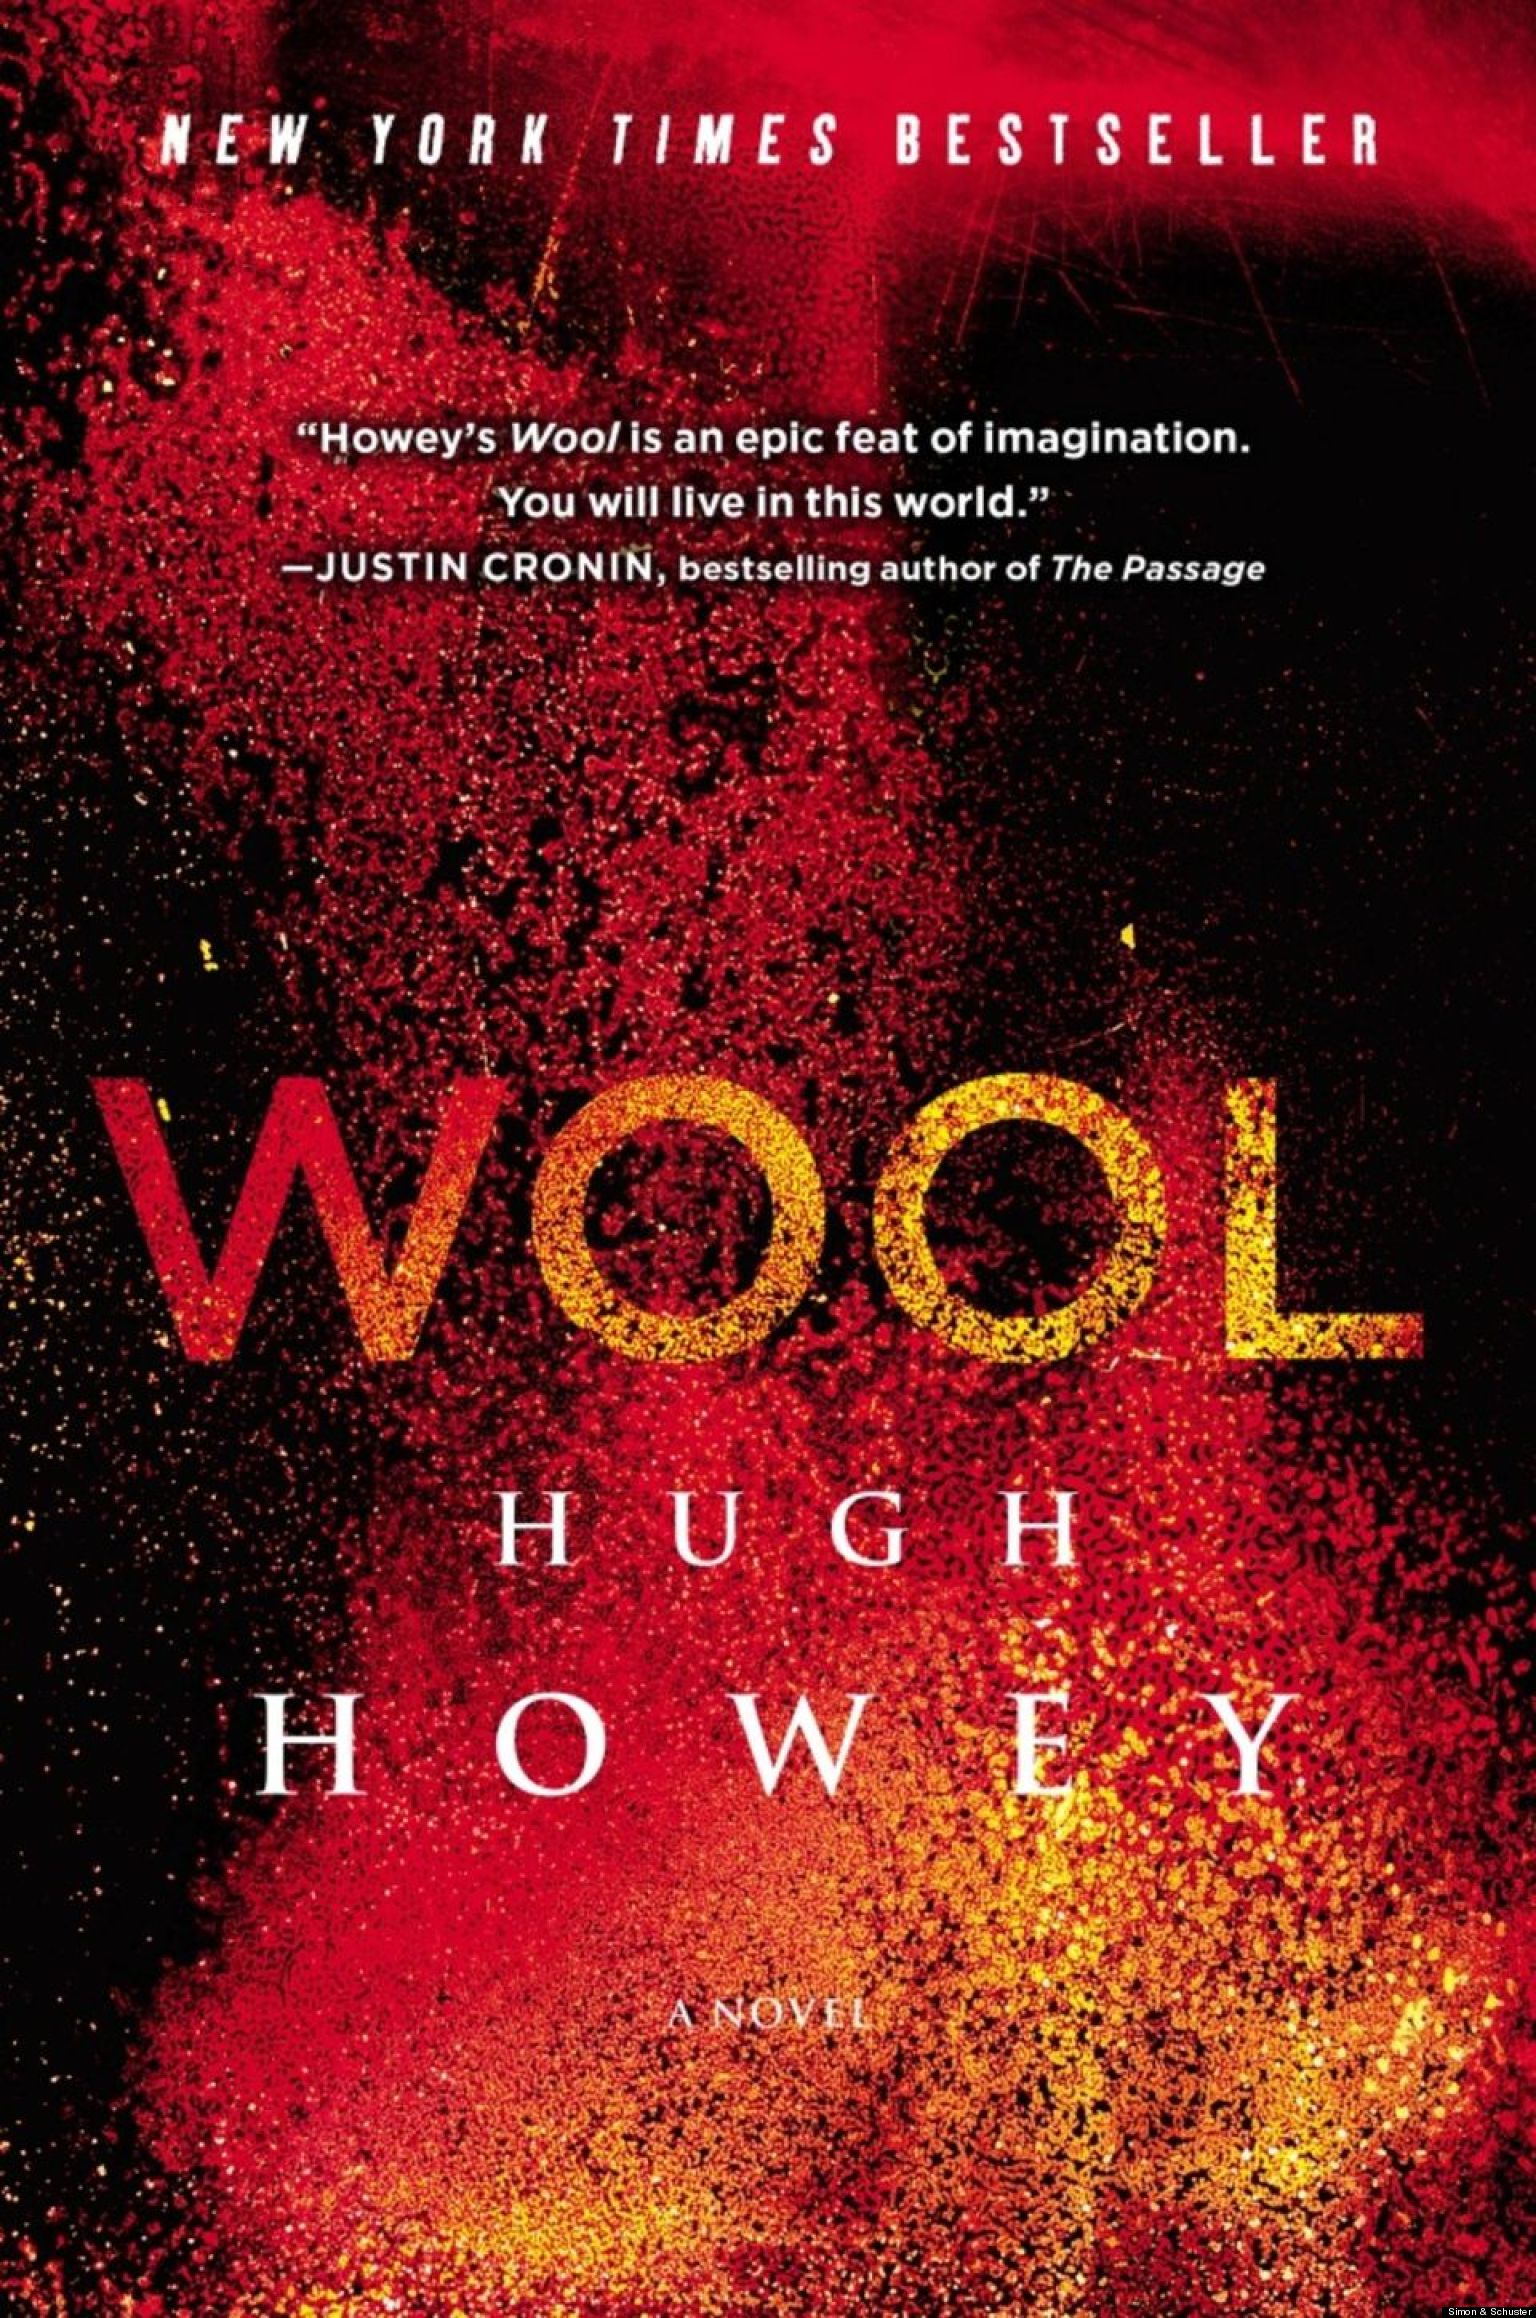 How wool got a unique publishing deal huffpost fandeluxe Images